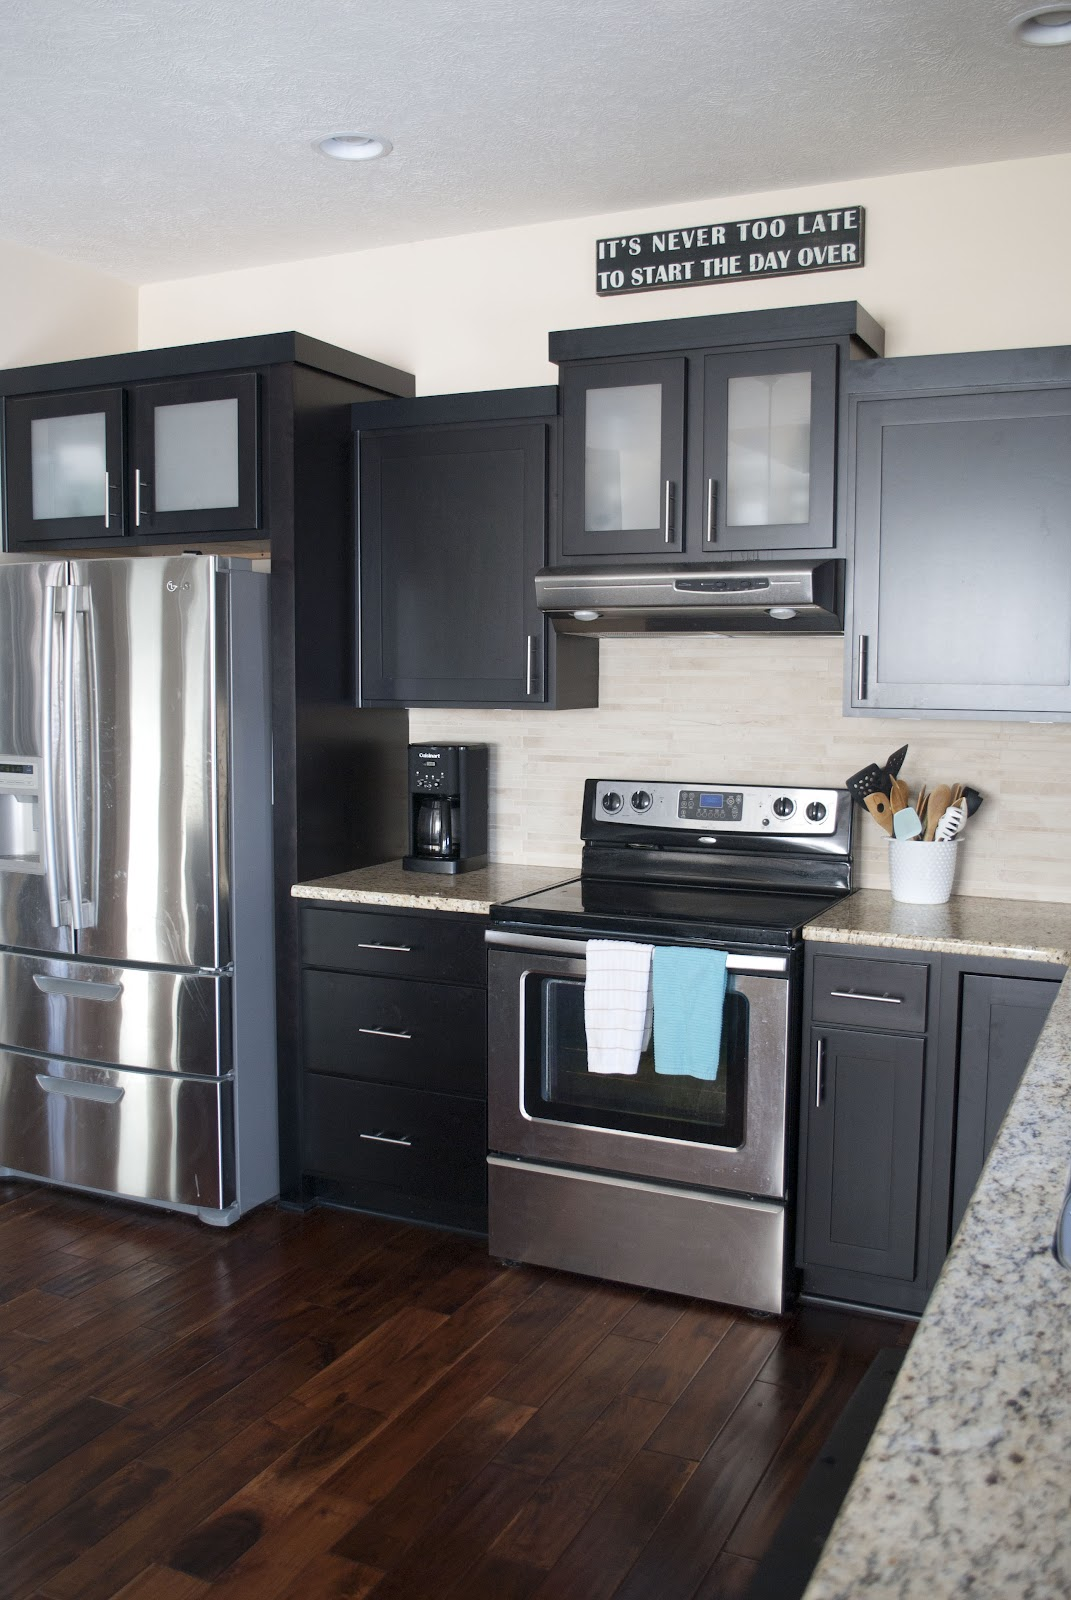 How to clean greasy laminate cabinets for Laminate cabinets